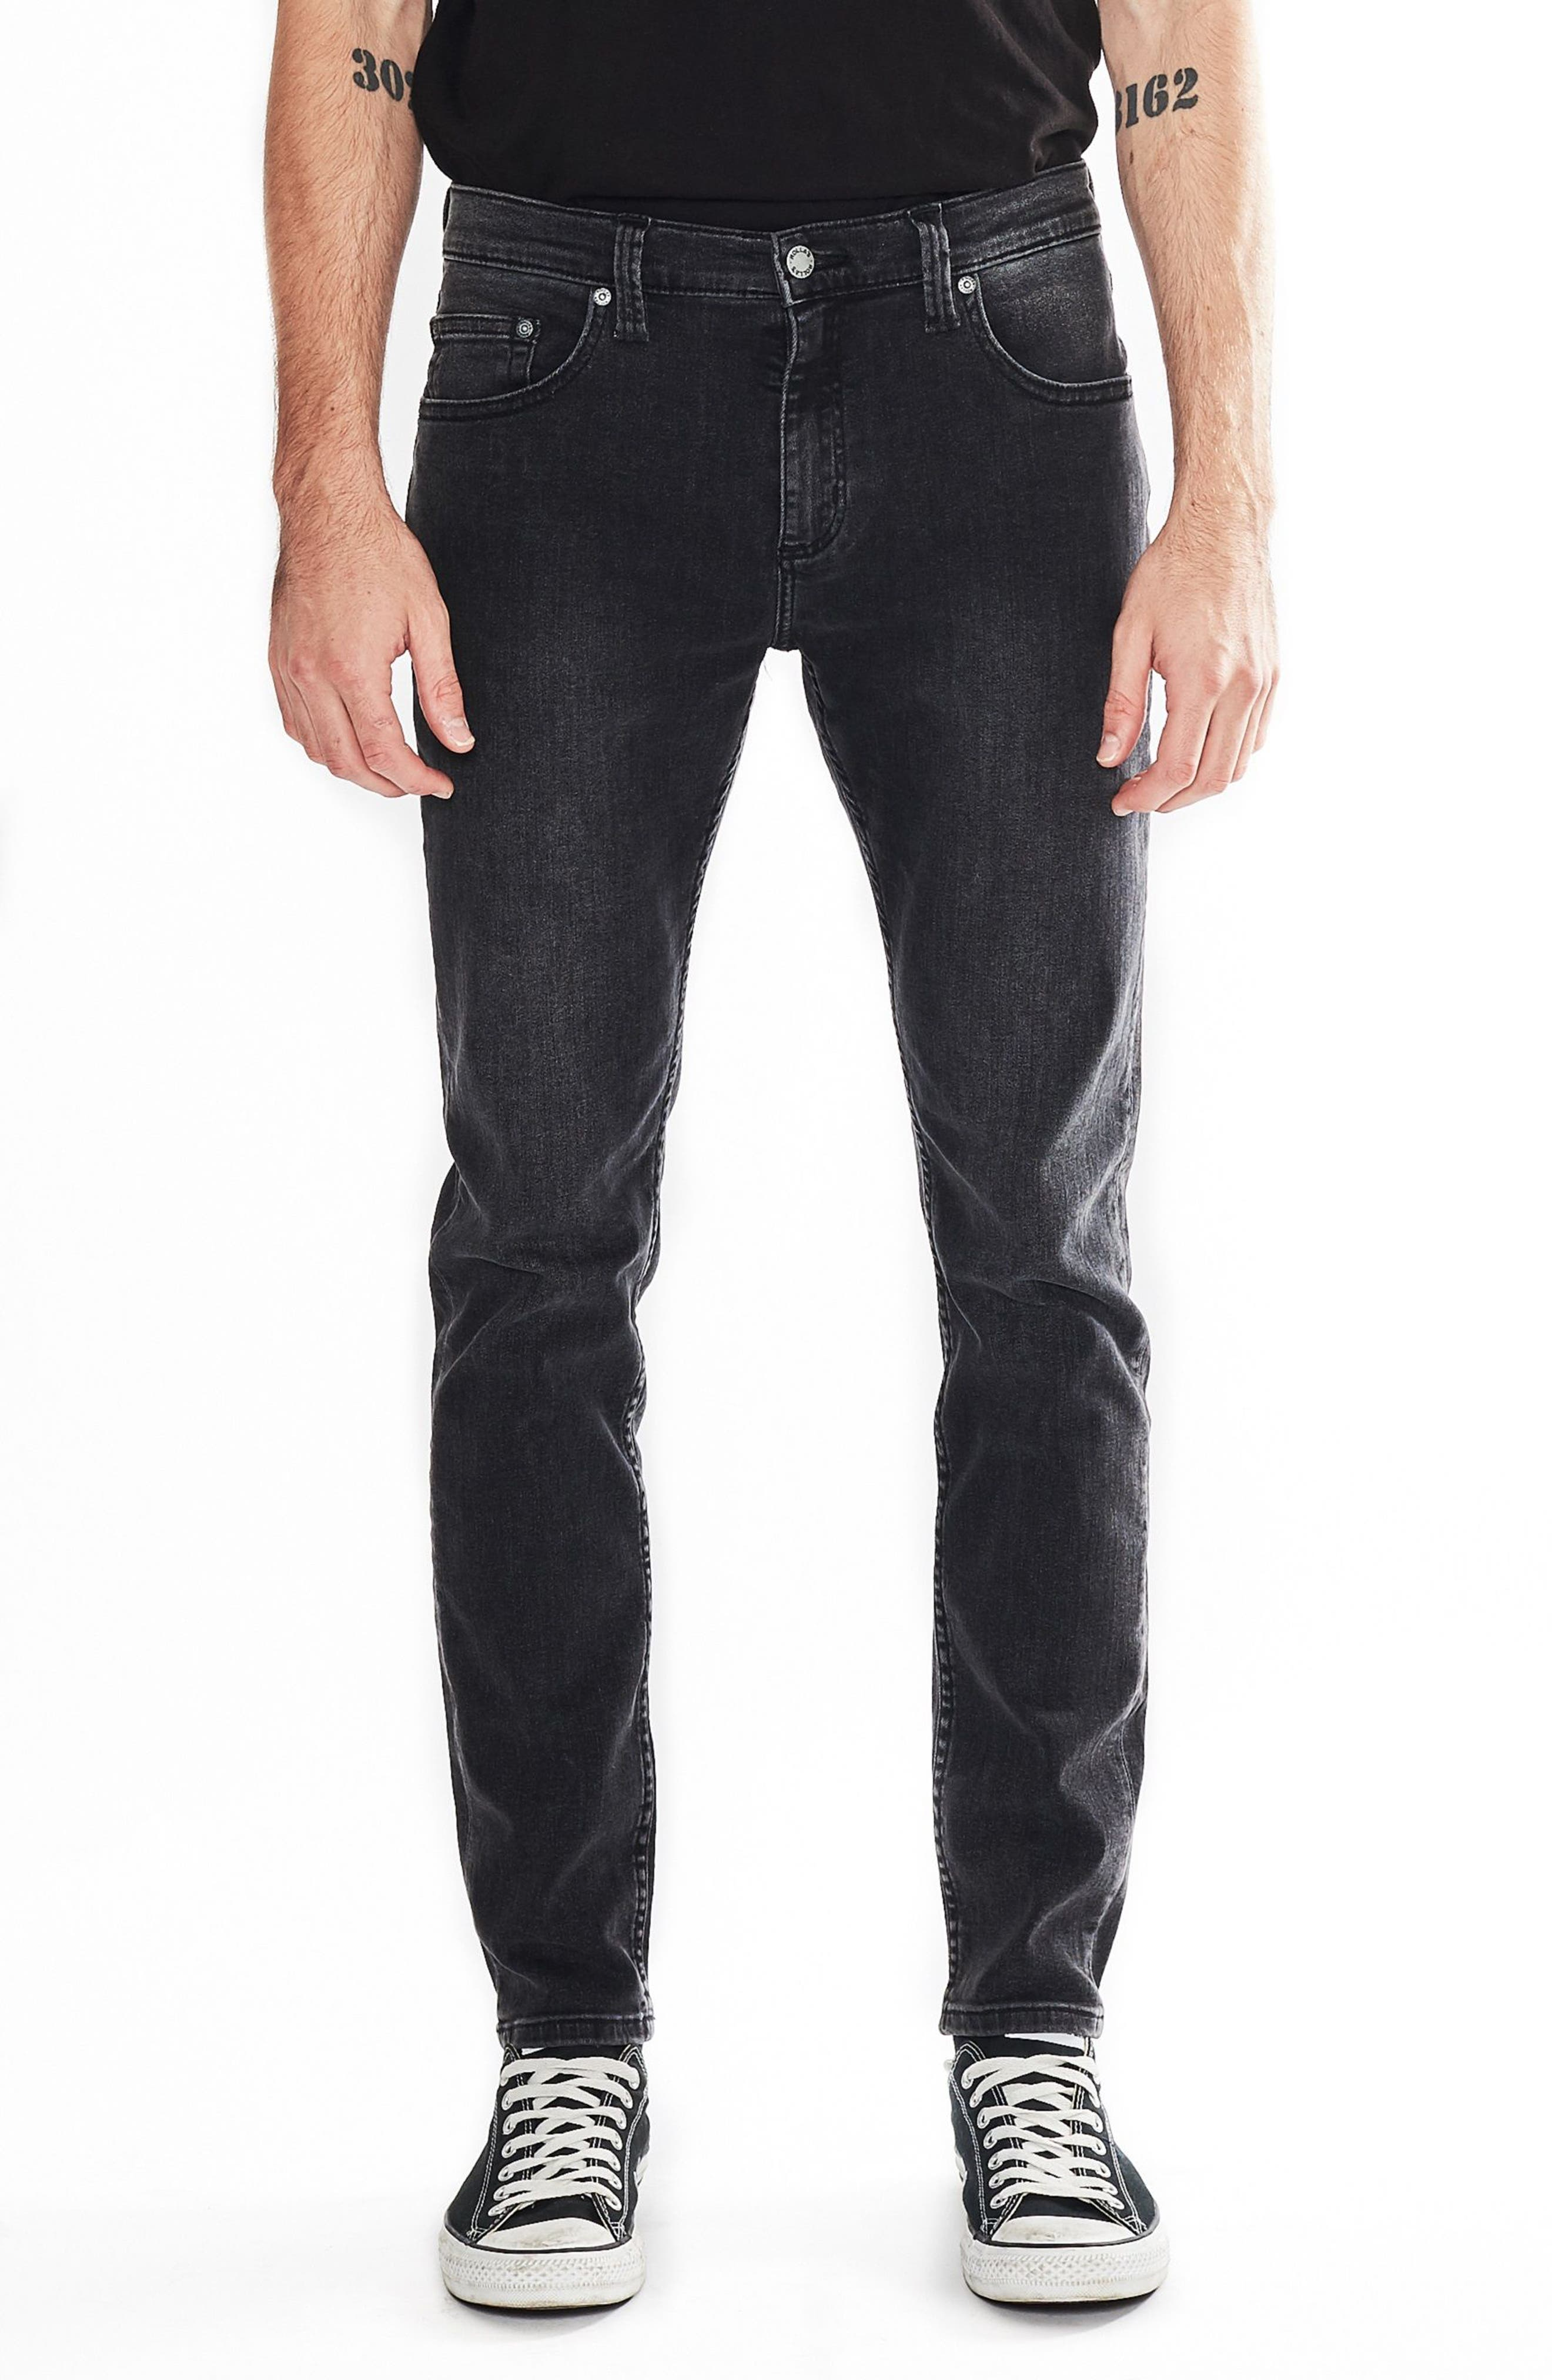 Stinger Skinny Fit Jeans,                             Main thumbnail 1, color,                             OLD GOLD